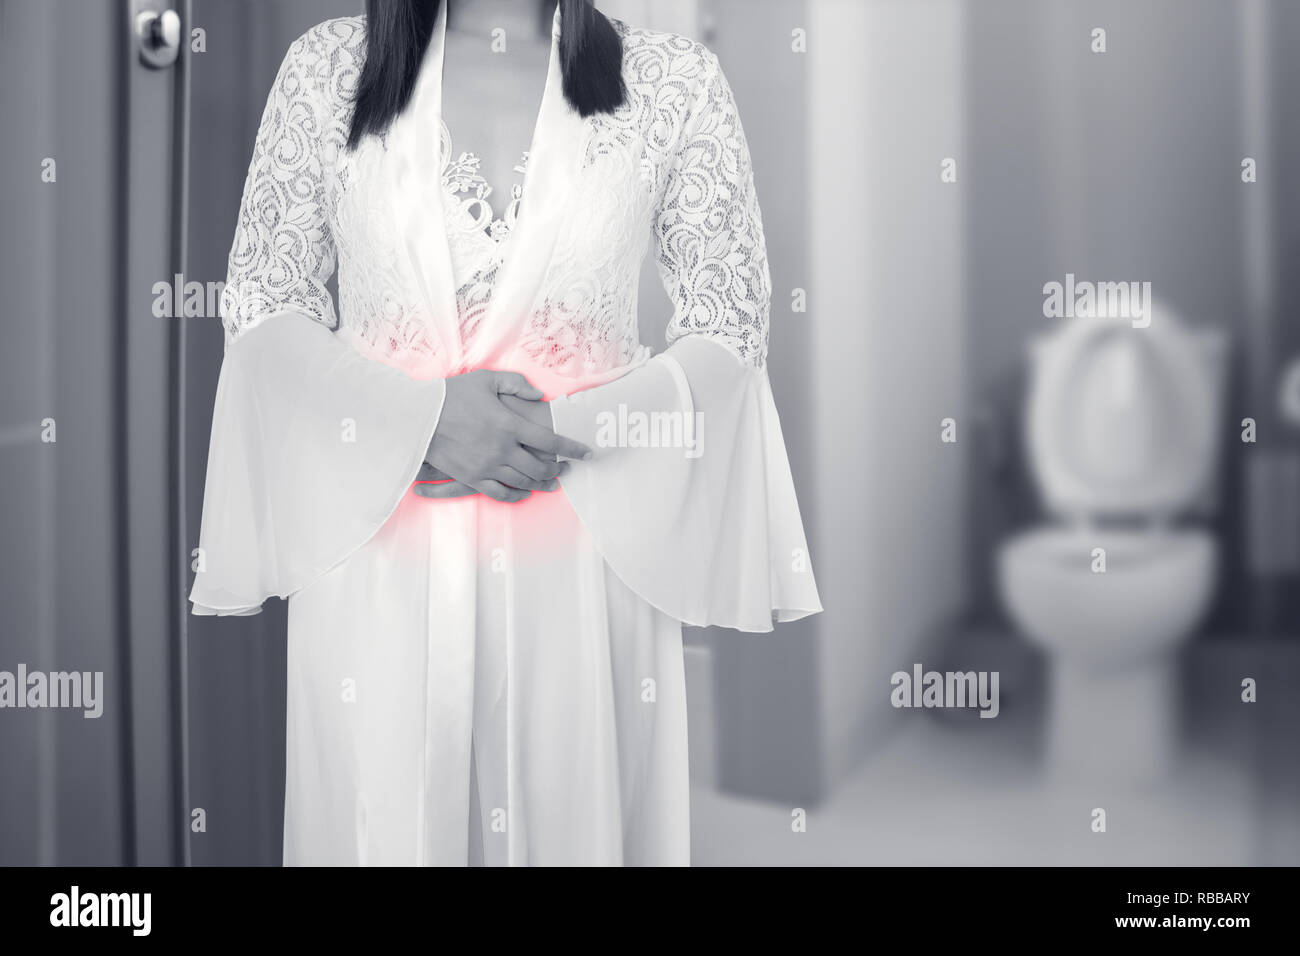 Woman in long white silky nightgown and lace robe touching belly painful suffering from stomachache causes of menstruation, Female in lace sleepwear w - Stock Image